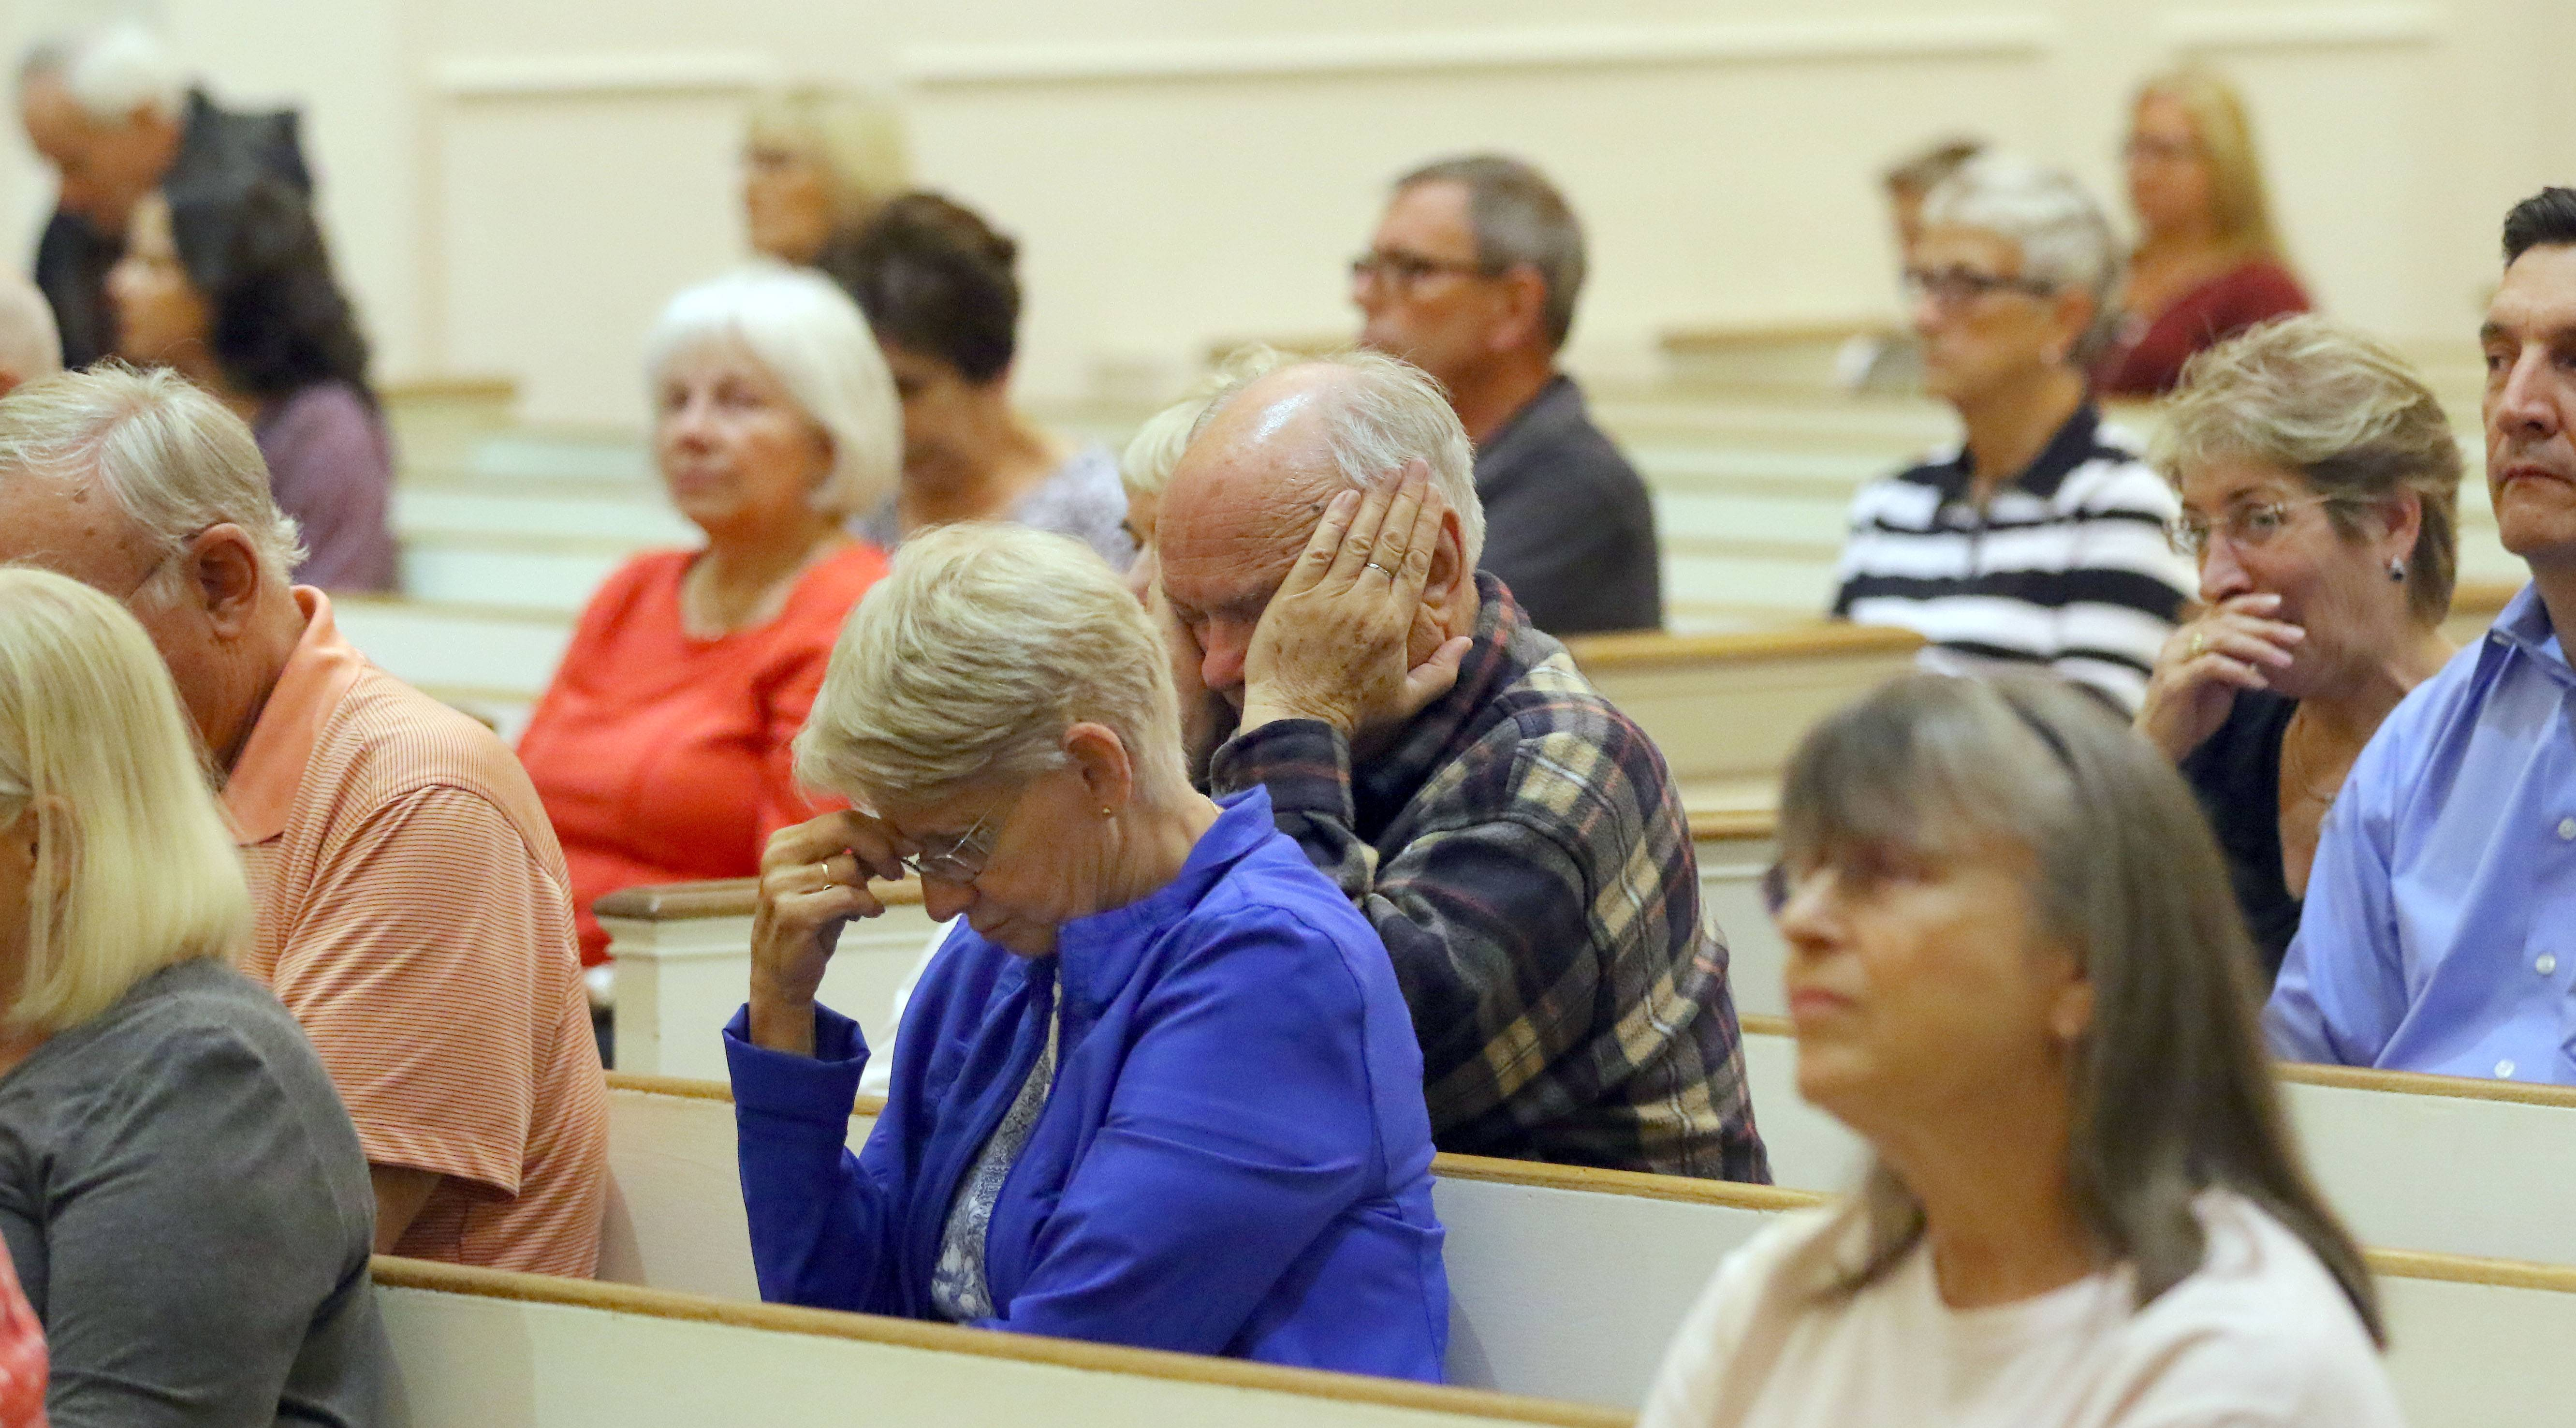 Parishioners pray during a service for the Las Vegas shooting victims Monday evening at St. James Catholic Church in Arlington Heights.